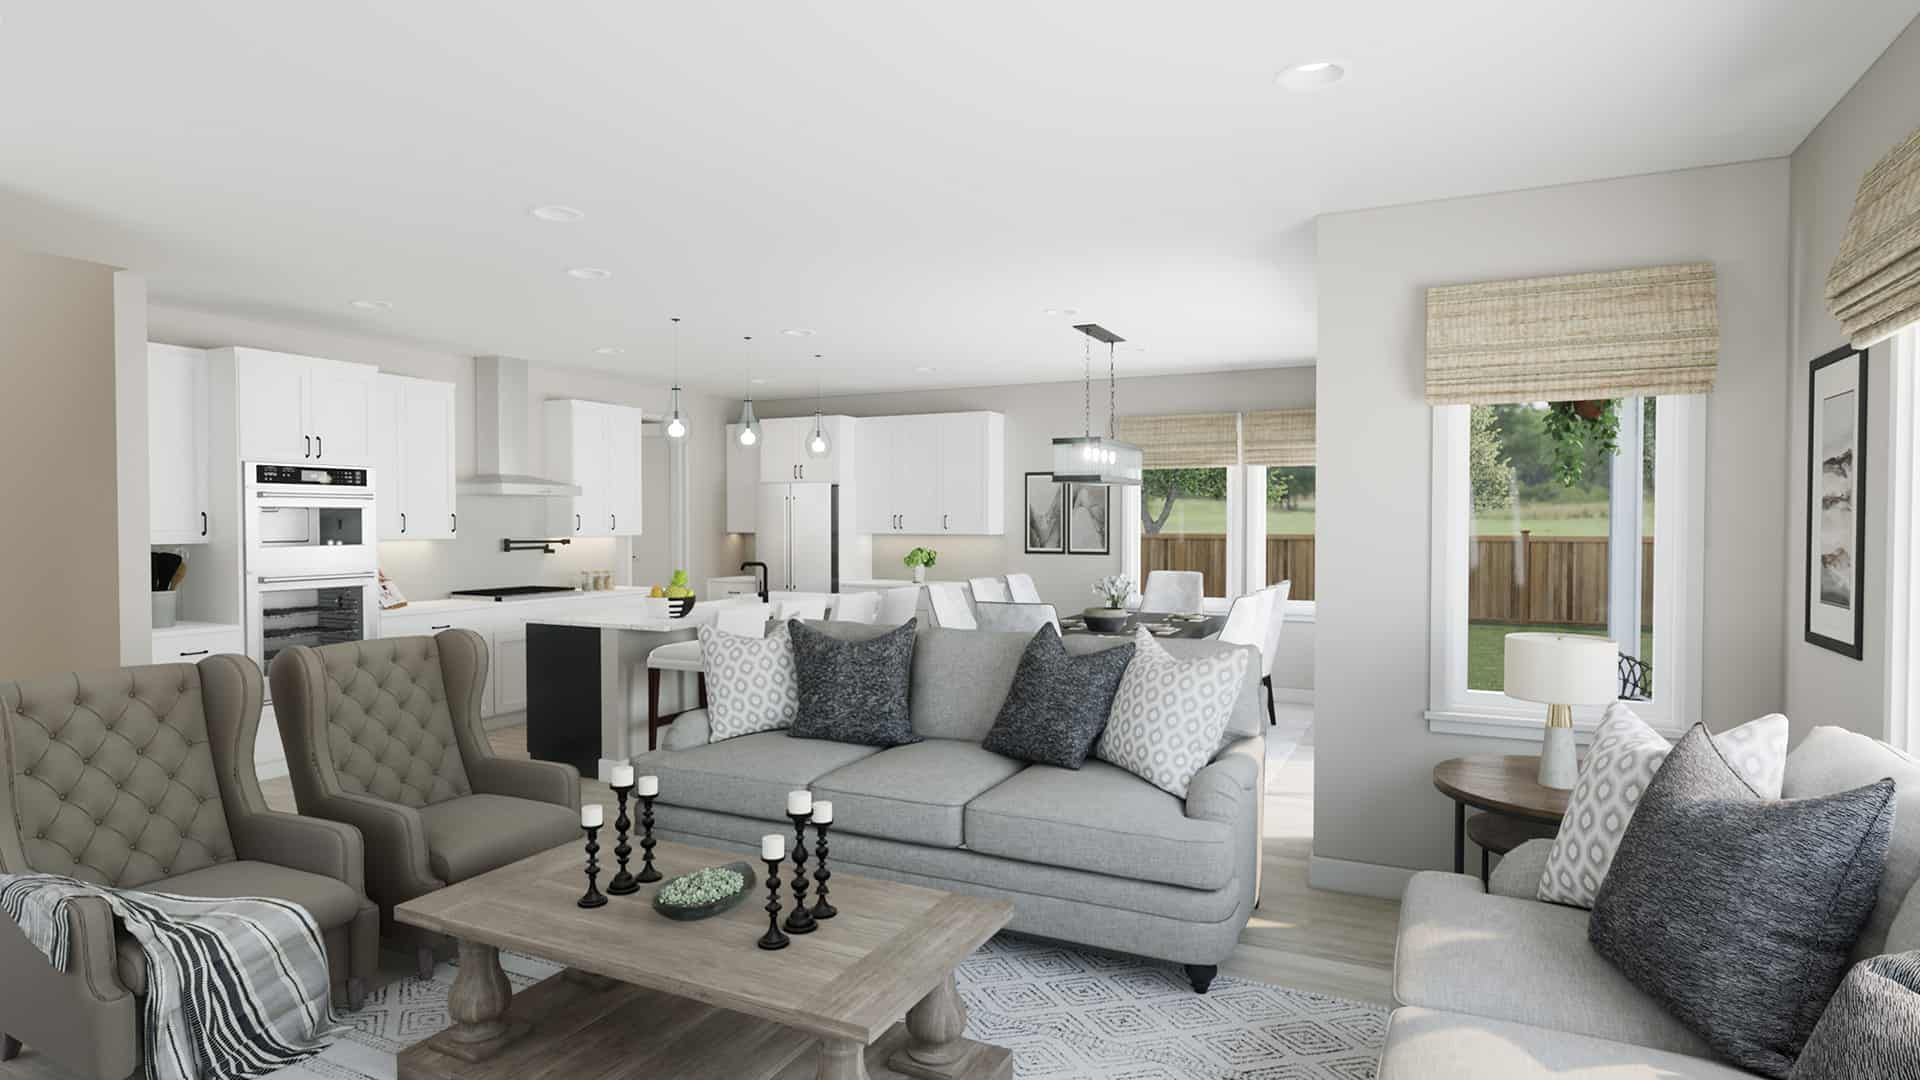 Living Area featured in the Plan A-270 By Tri Pointe Homes in Bremerton, WA